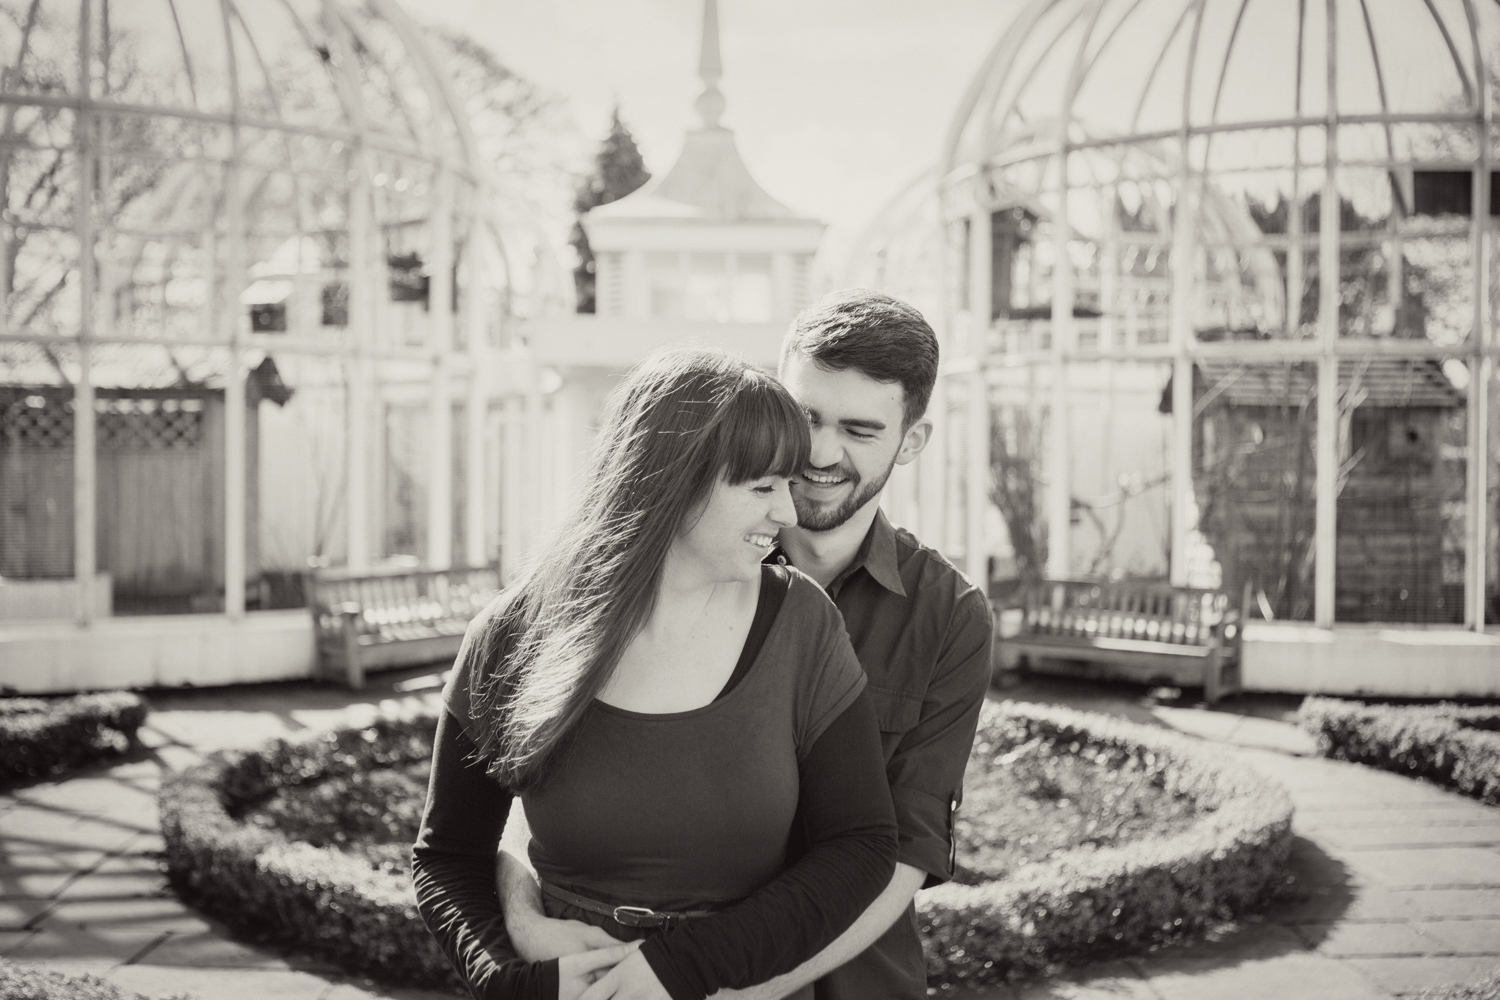 Sophie Evans Photography, Alice & Nathanael Botanical Gardens Engagement Shoot. Warwickshire Wedding Photographer (9).jpg